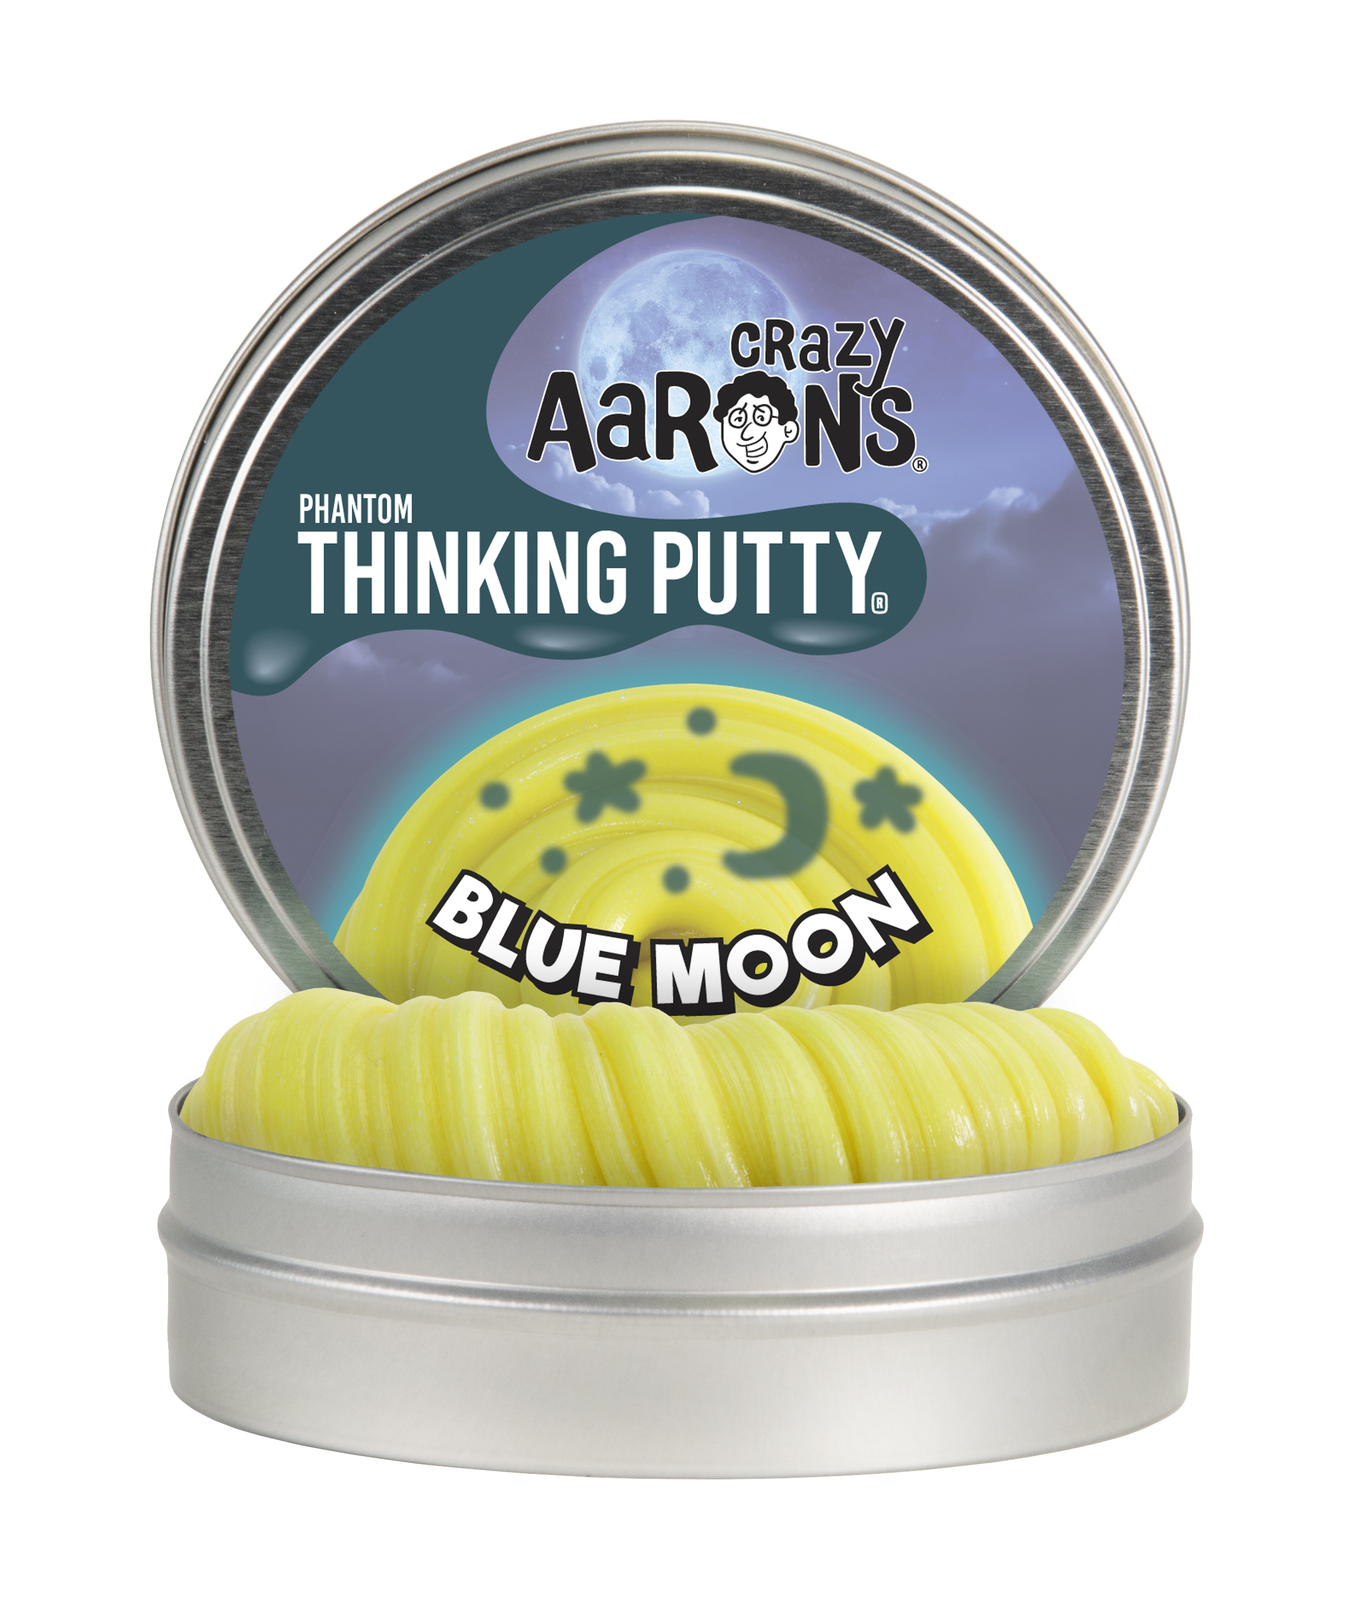 Crazy Aarons: Thinking Putty - Blue Moon (UV) image